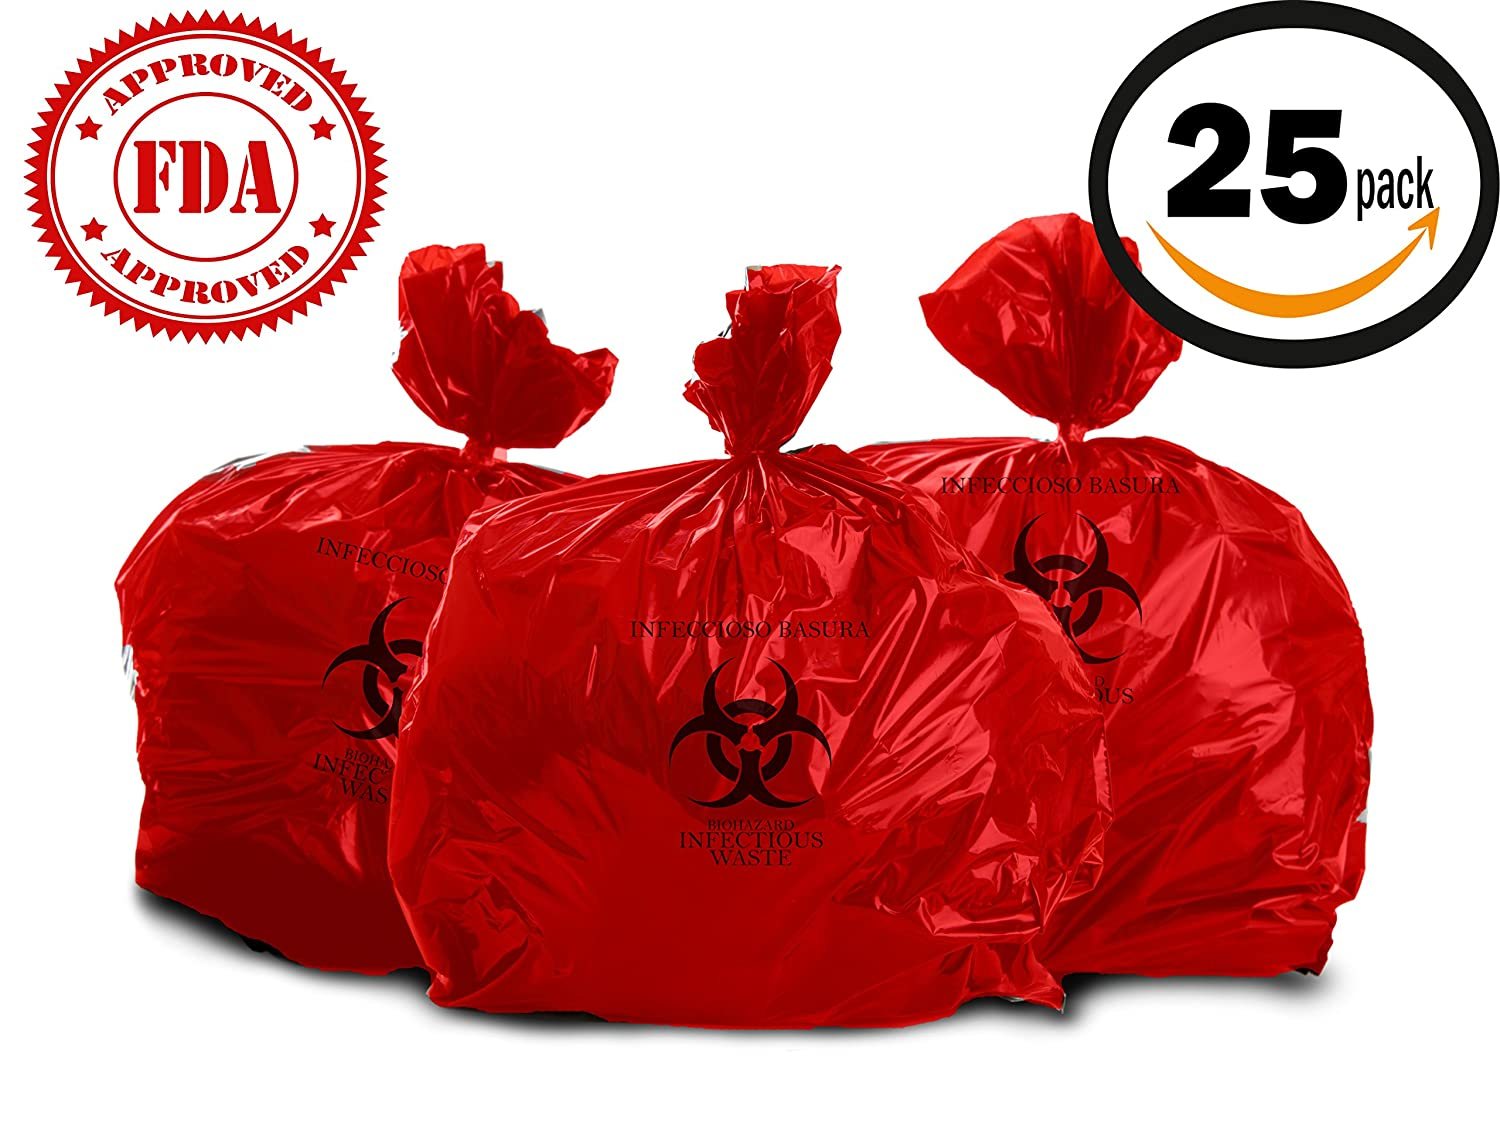 Oakridge Heavy Duty 10 Gallon Biohazard Waste Bags (Roll of 25) - Hospital Grade